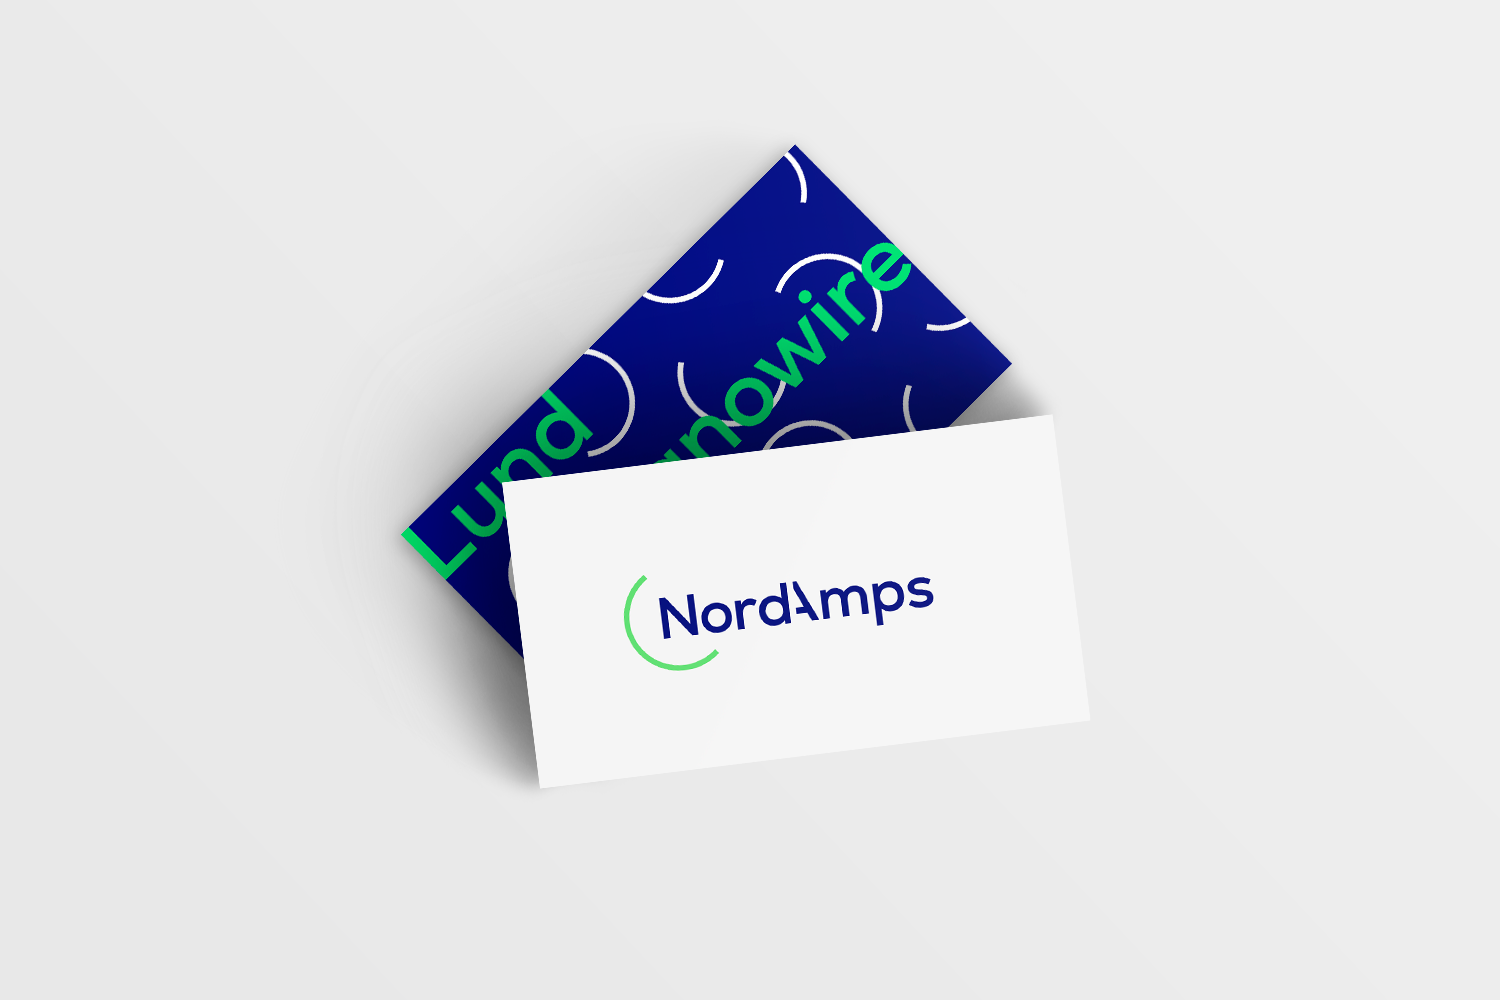 NordAmps